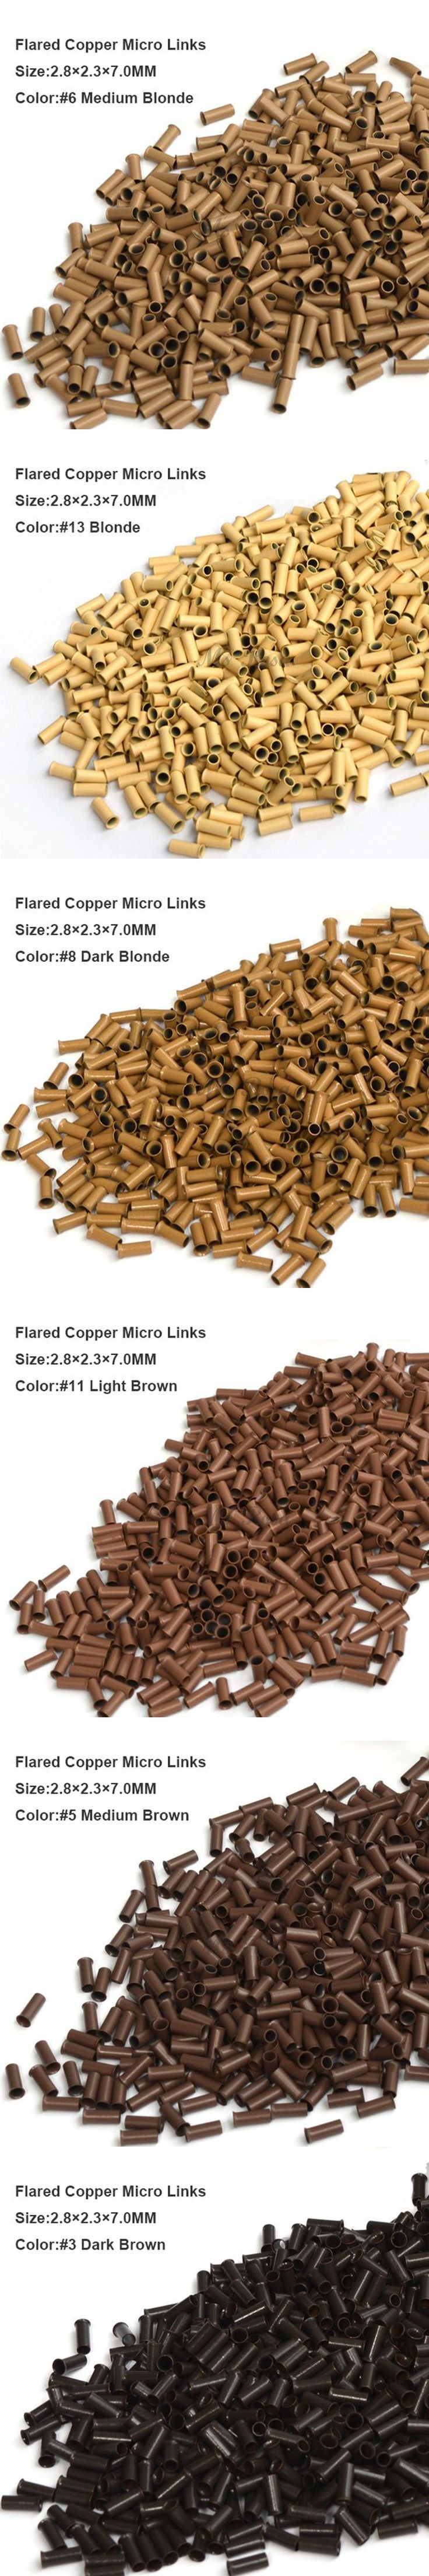 Copper Micro Beads 2.8*2.3*7.0MM 1000Pcs/Bottle #3 Dark Brown Micro Rings Micro Bead Hair Extensions Accessories